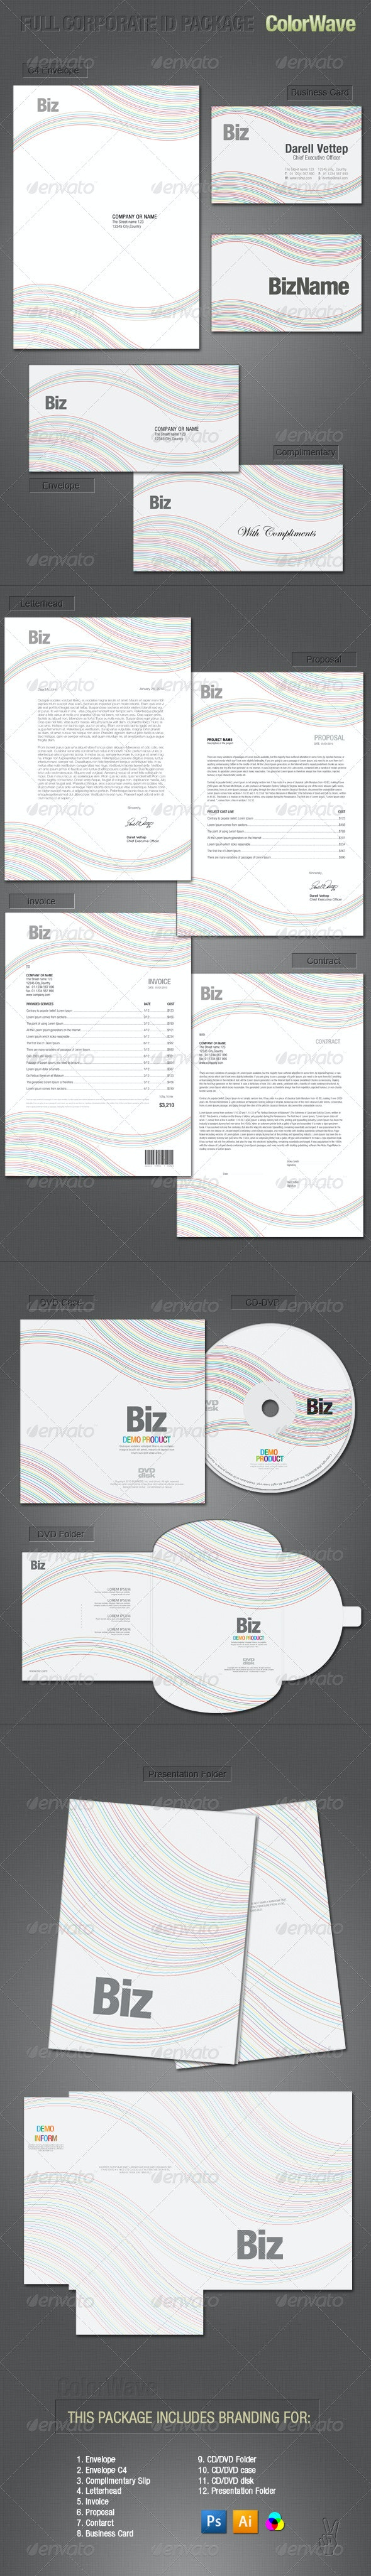 FULL CORPORATE ID PACKAGE - COLORWAVE - Stationery Print Templates